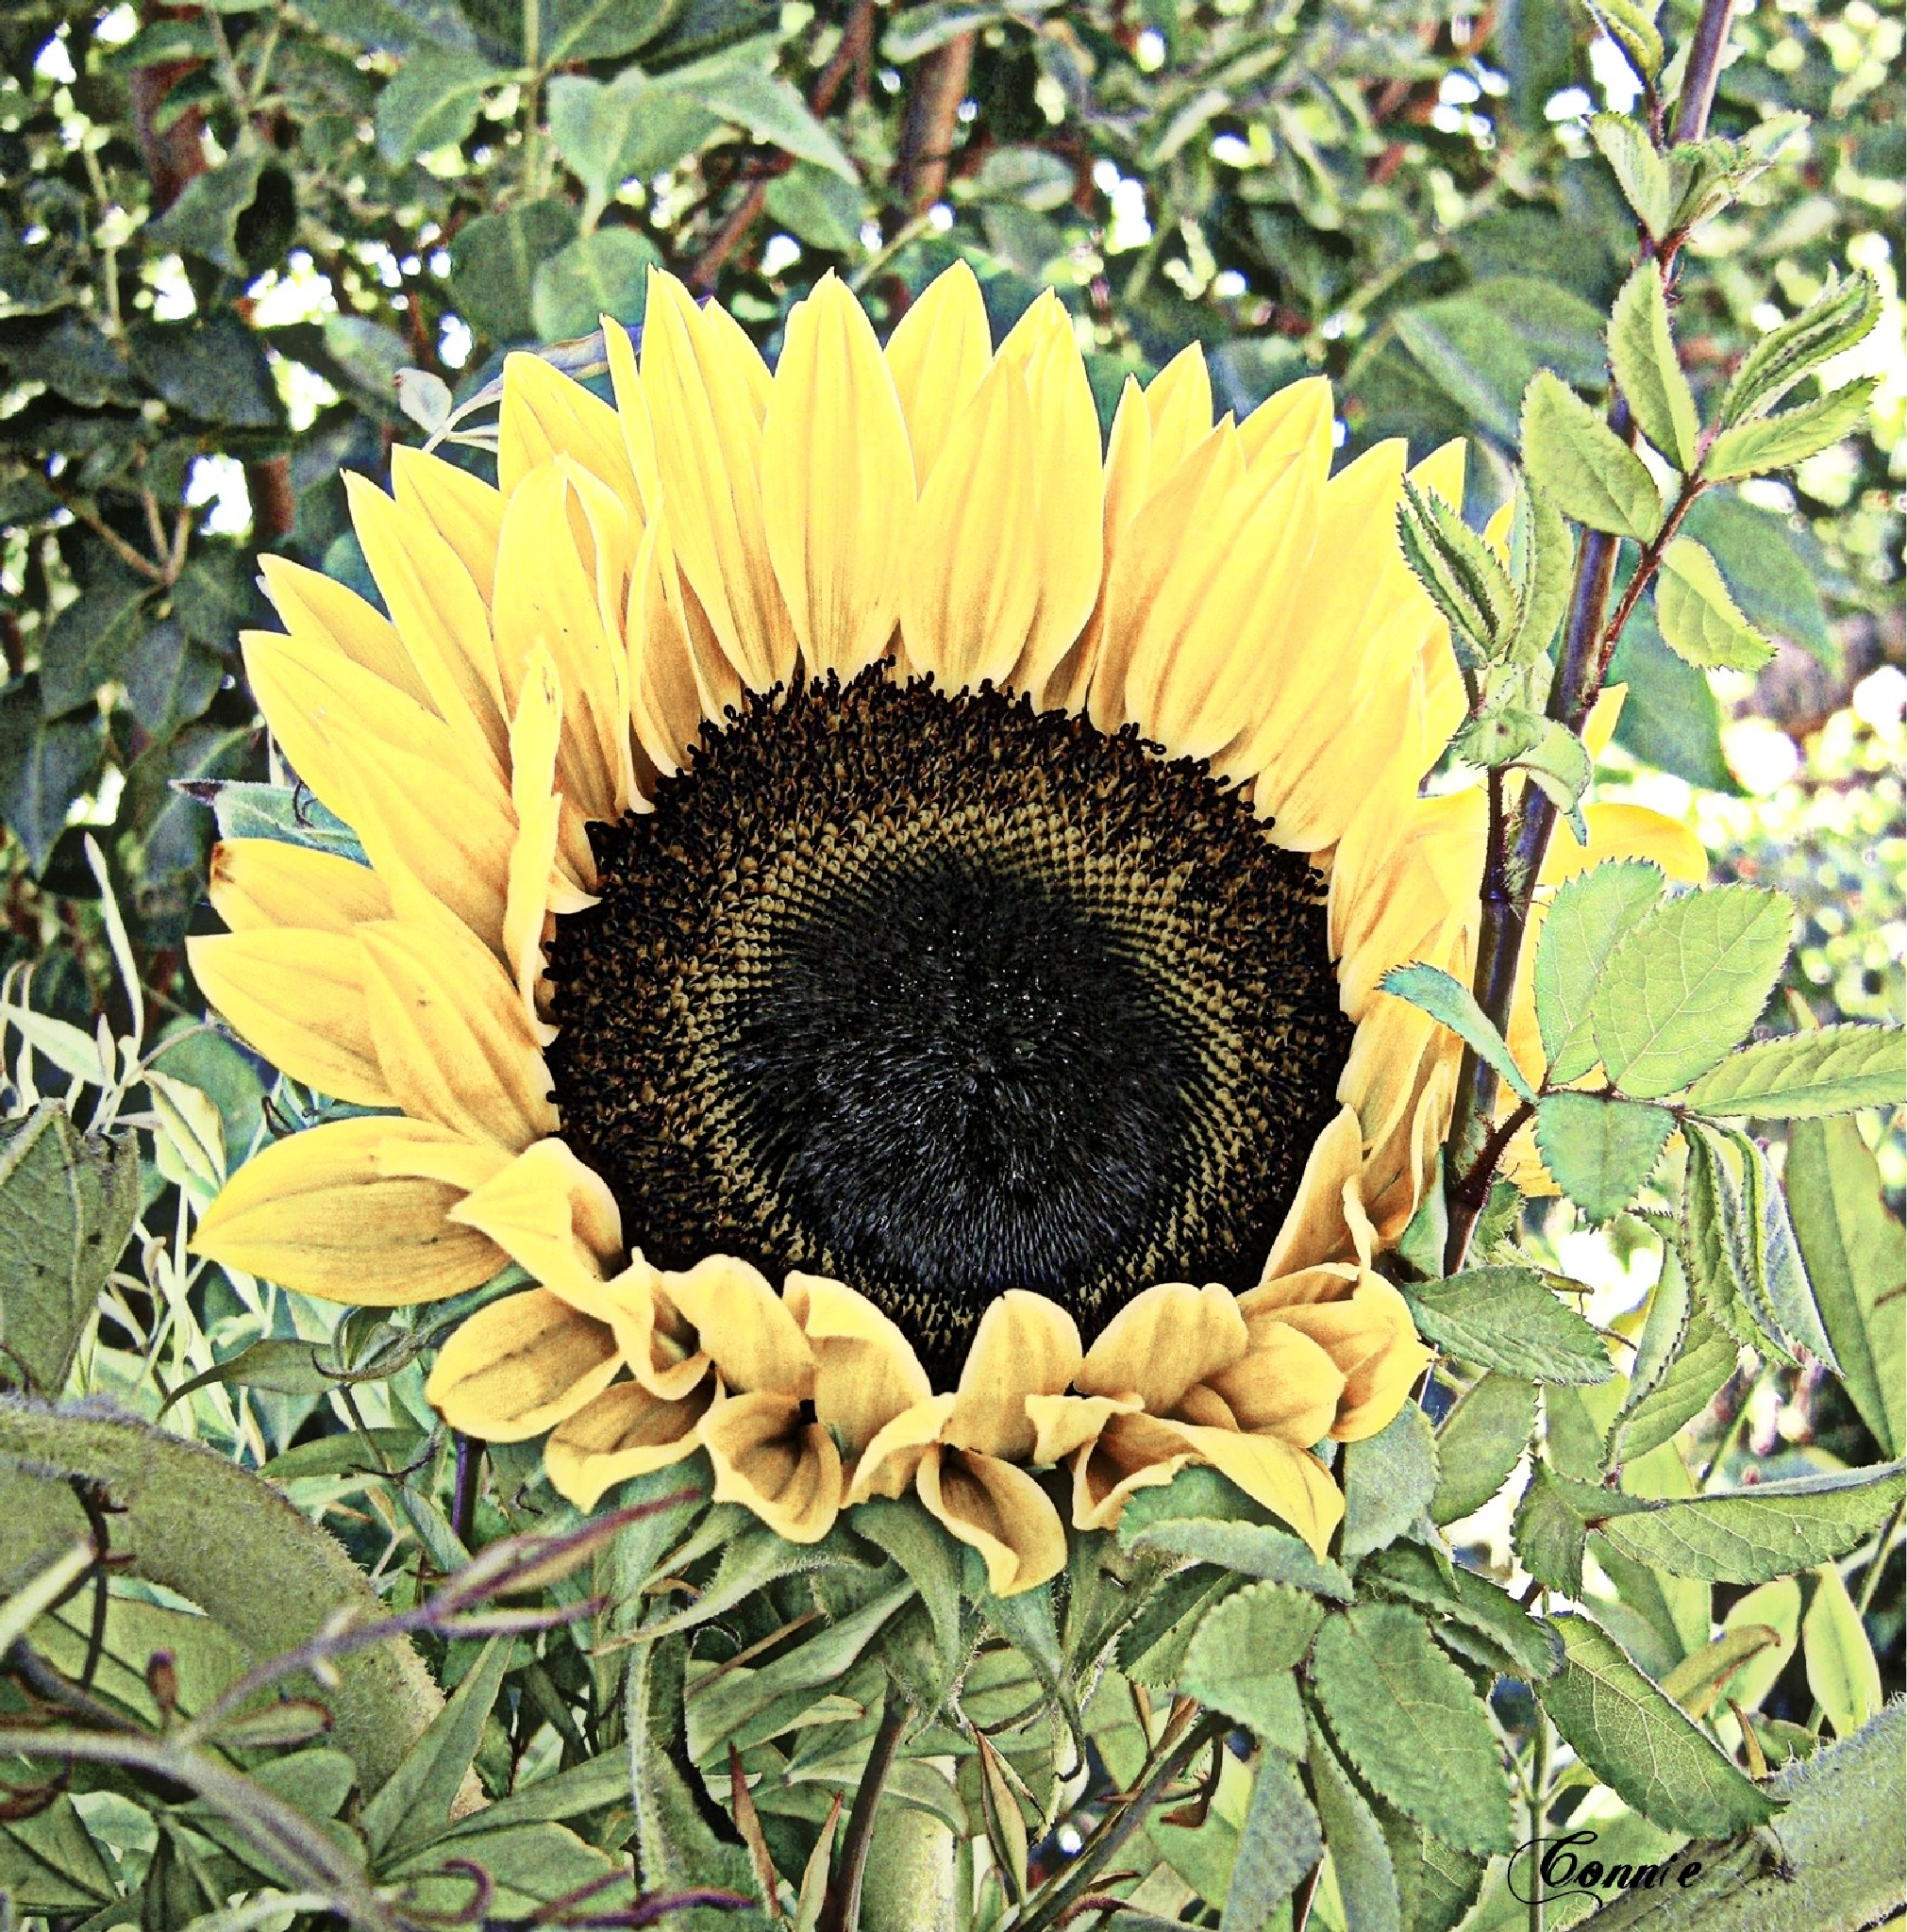 Giant Sunflower days by connie